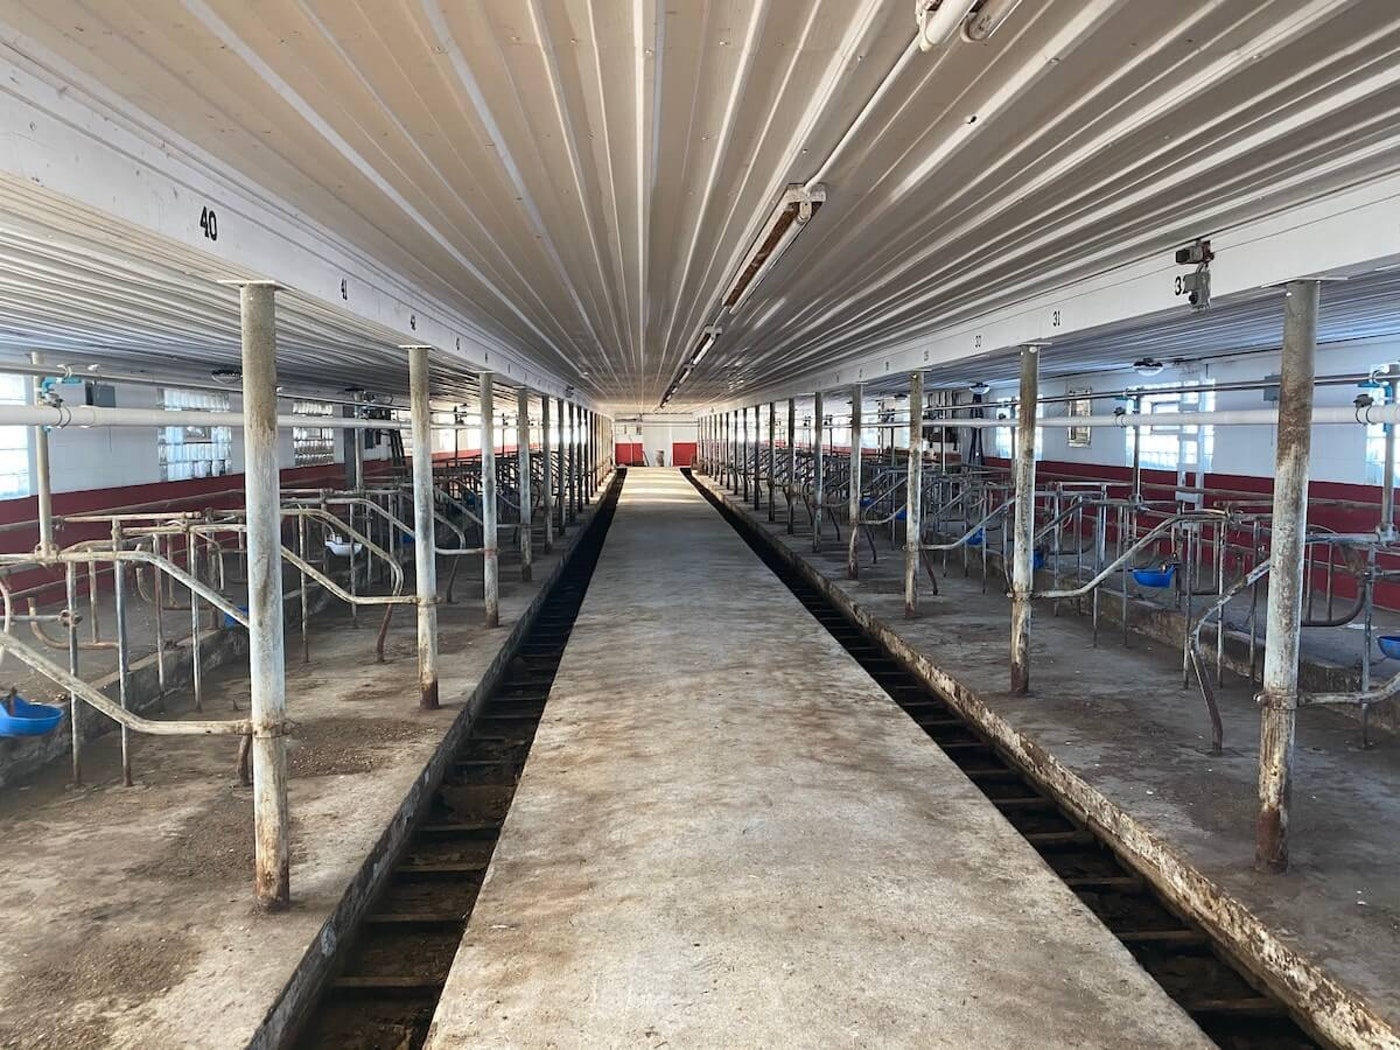 This barn in Manitowoc County sits empty after hosting four generations of a family that milked 72 cows twice a day. (Photo by Pat Kreitlow)